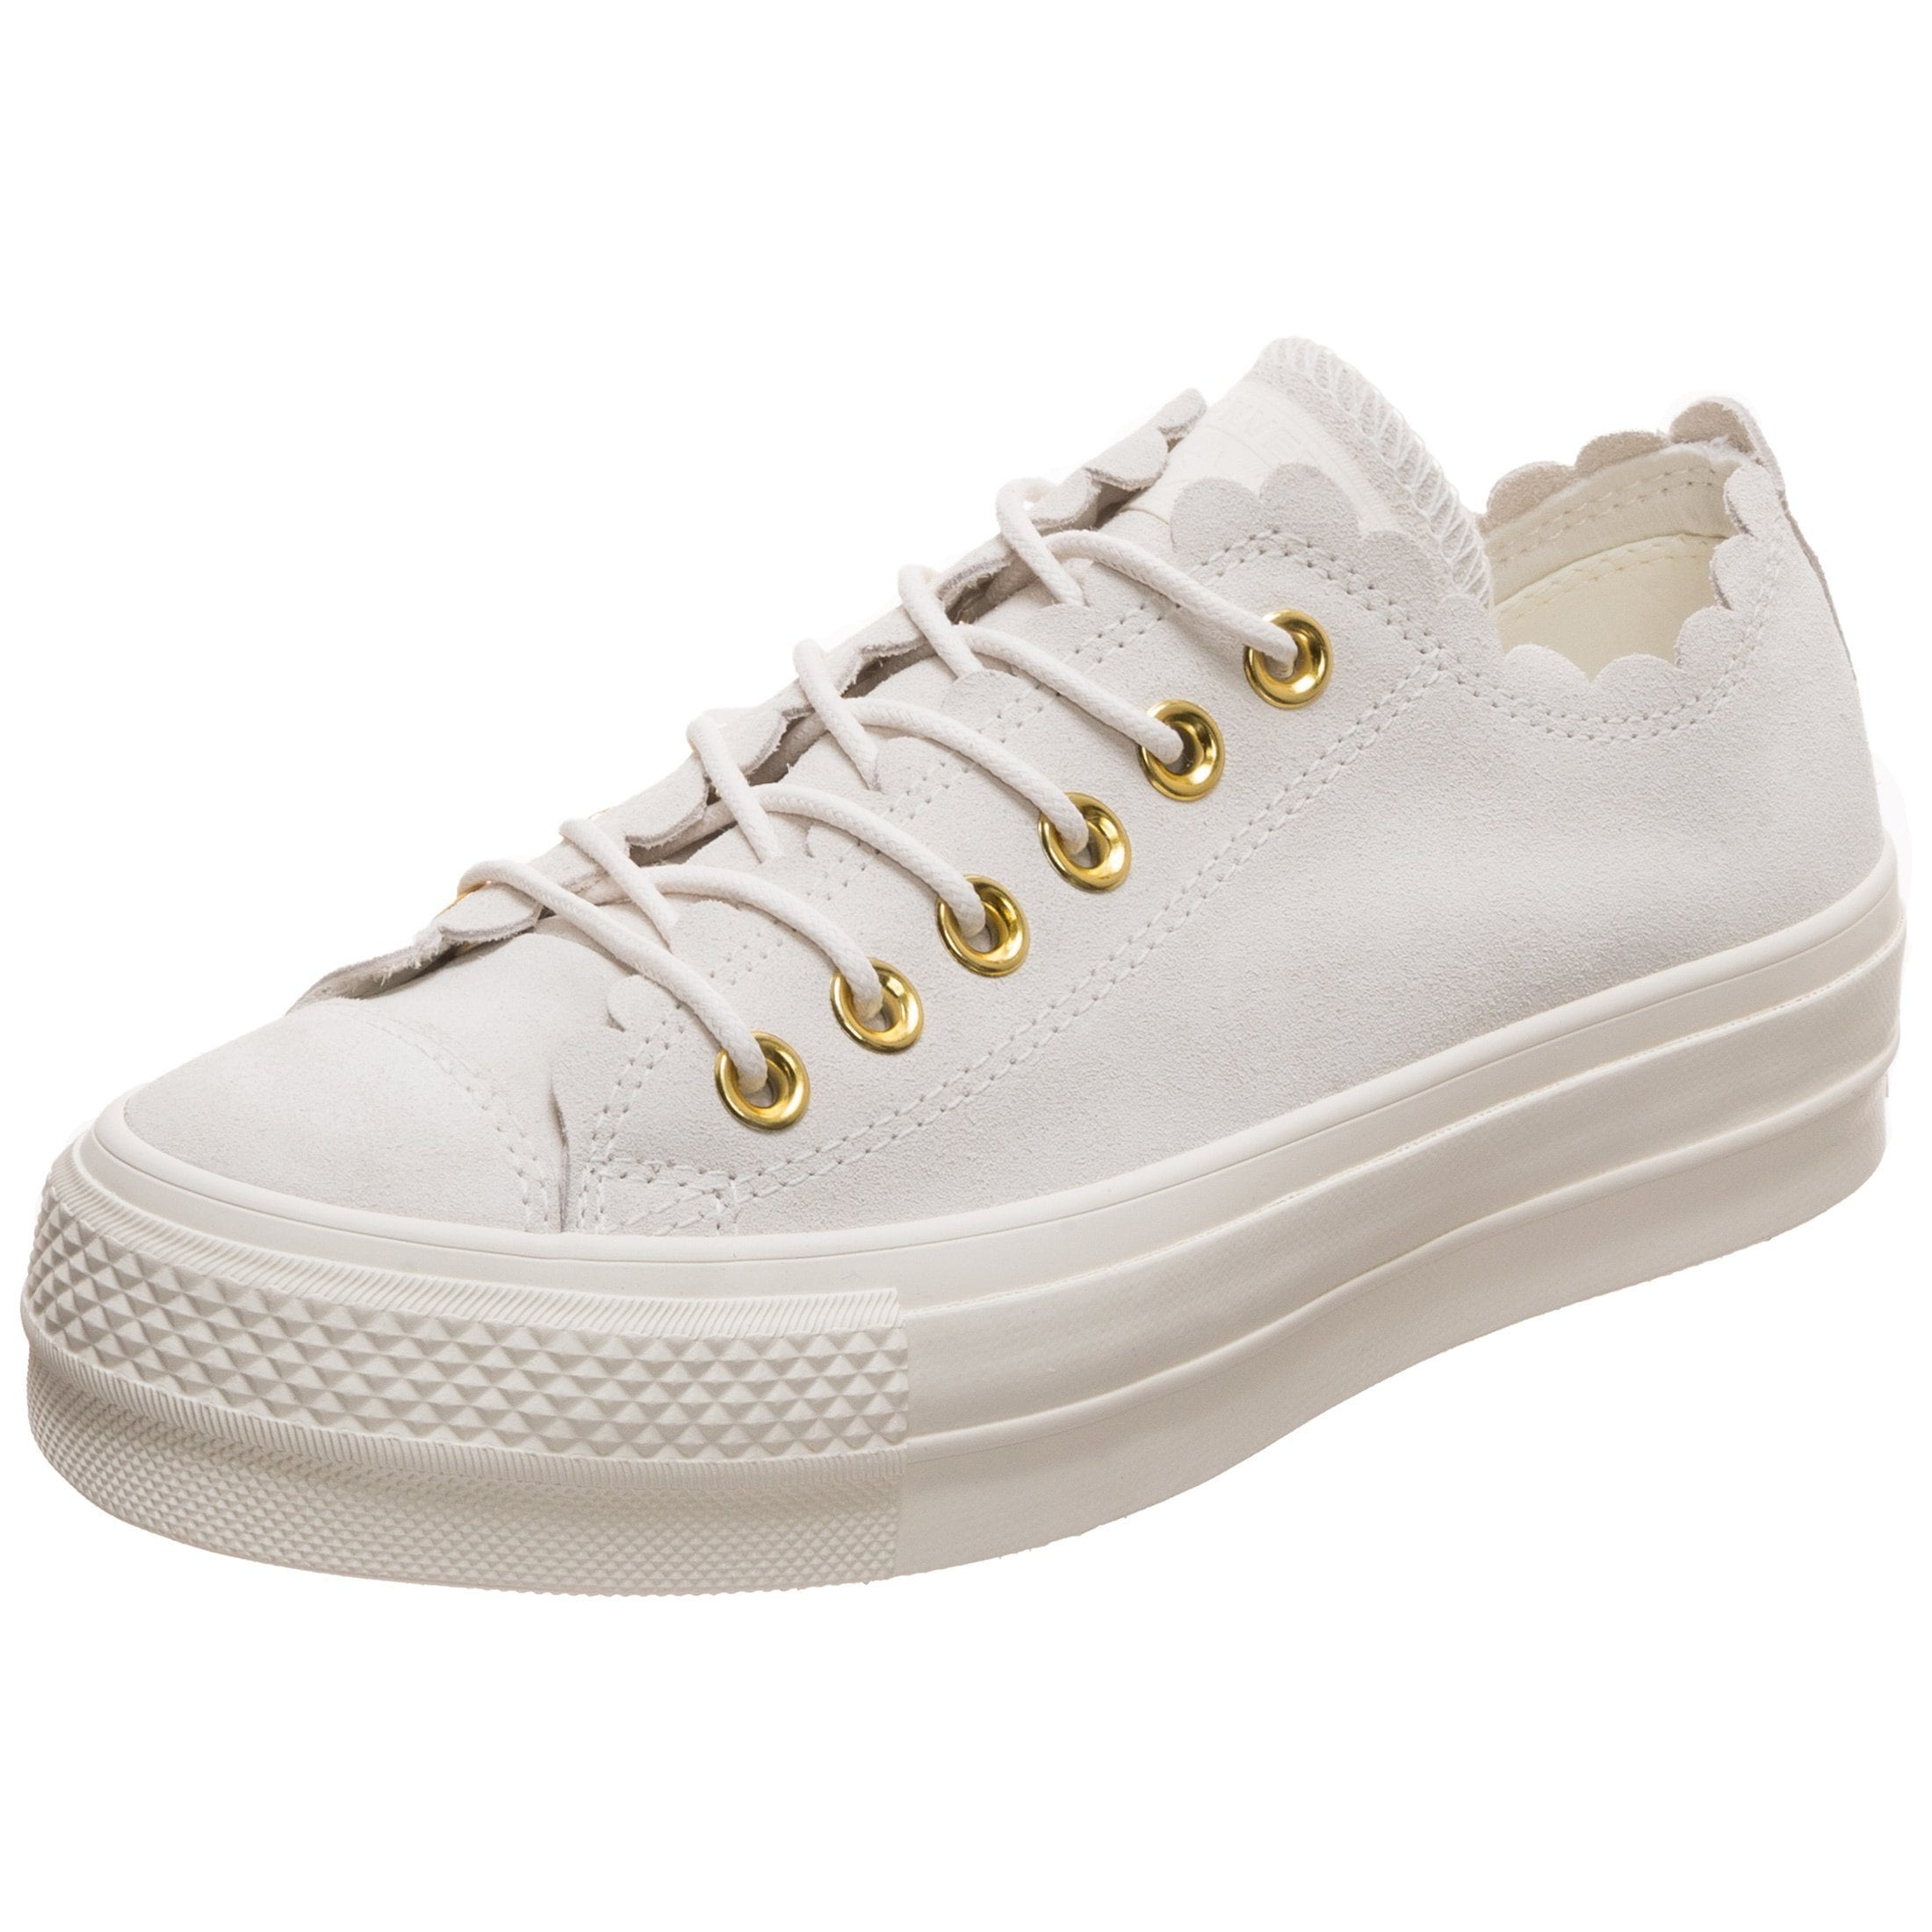 converse -  Sneaker Chuck Taylor All Star Frilly Thrills Lift